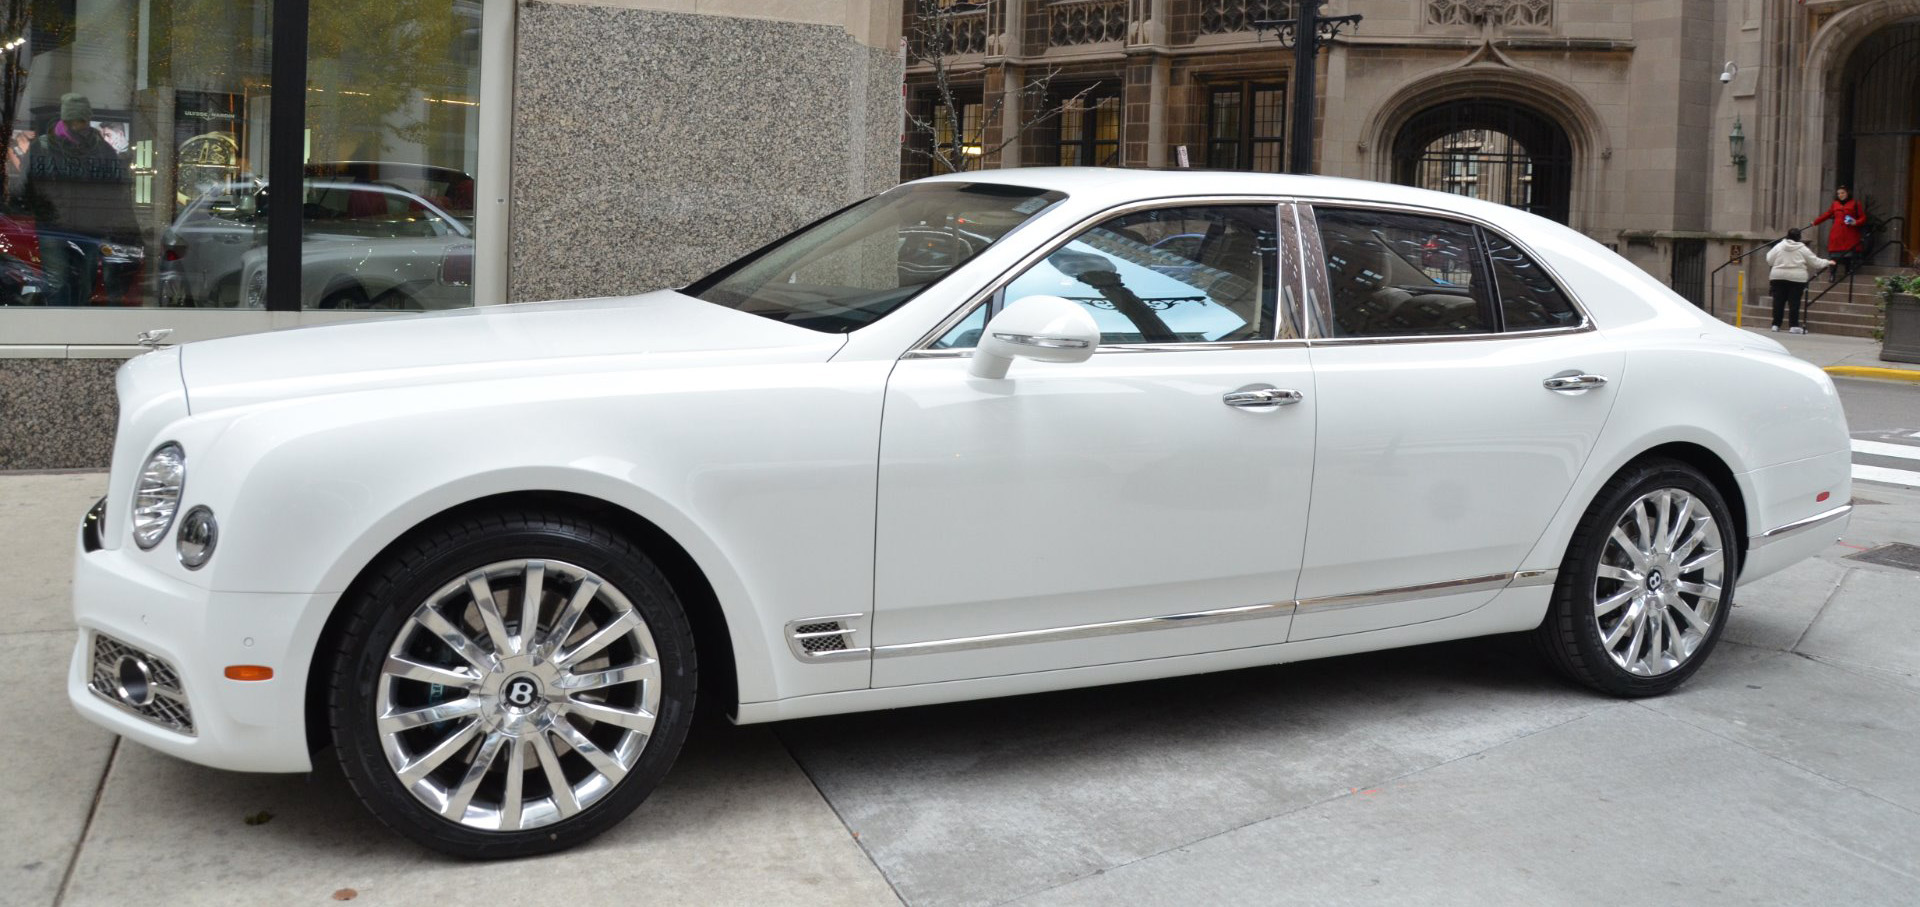 uk-prestige-car-hire-Bentley-mulsanne5